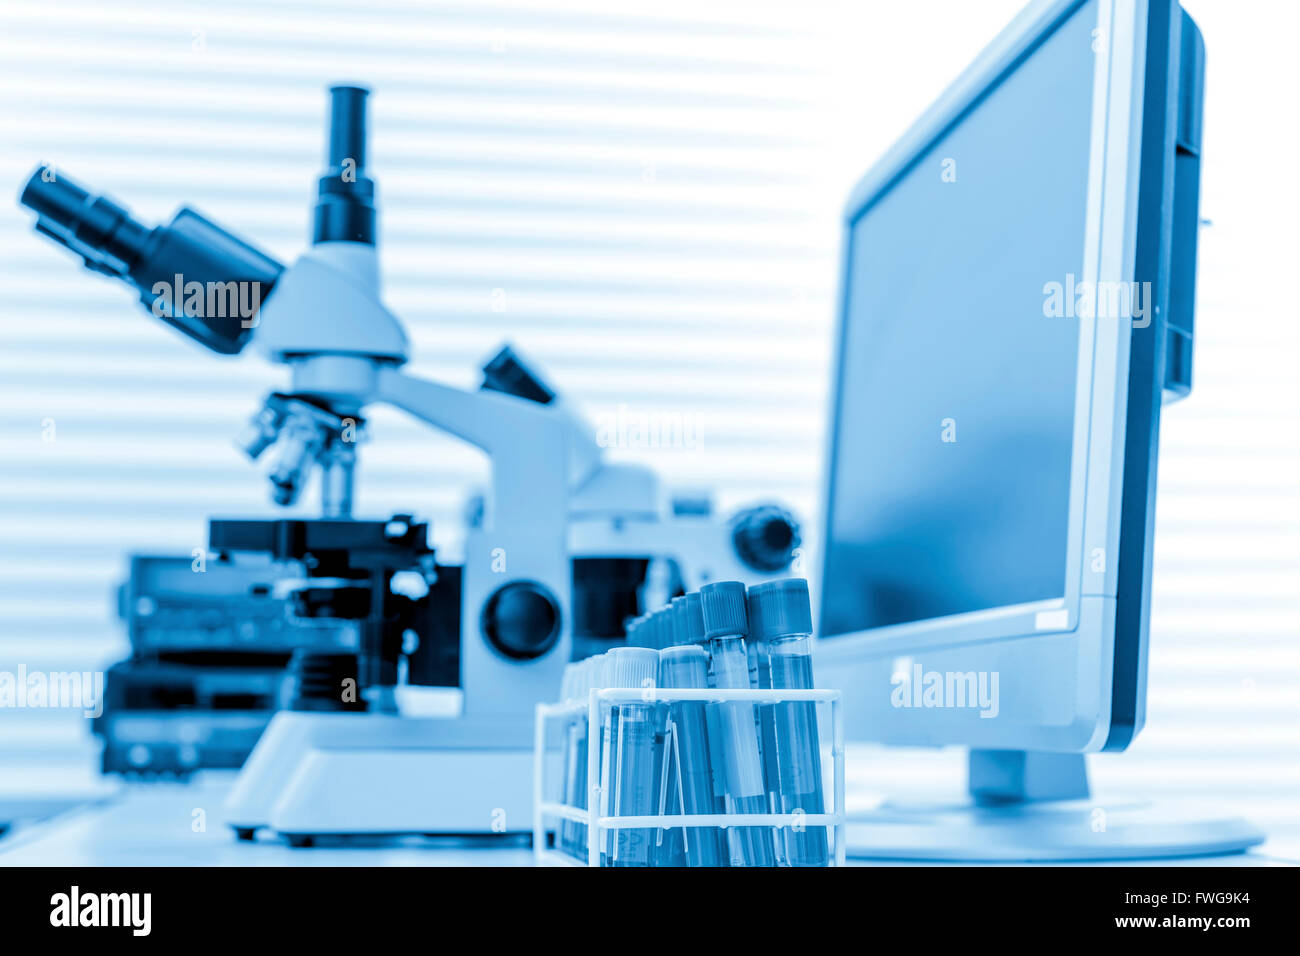 Microscope and computer monitor in the laboratory. - Stock Image